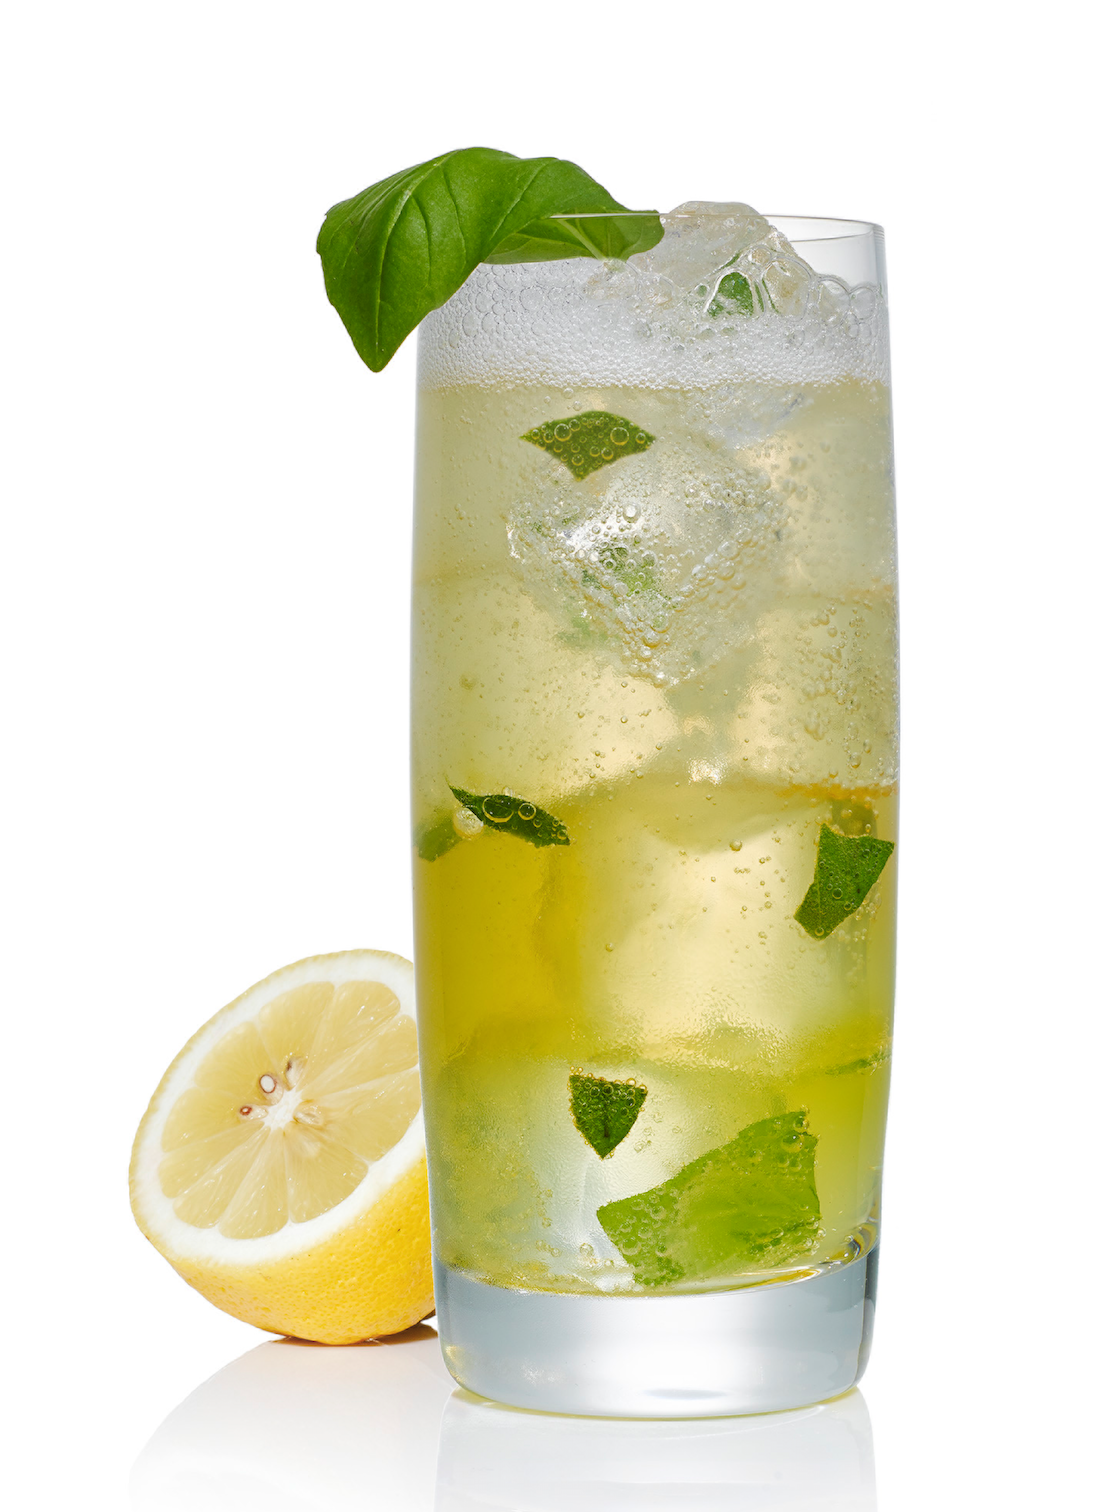 And they're off! Enjoy this simple, but flavorful Triple Crown Lemonade while watching the Kentucky Derby.